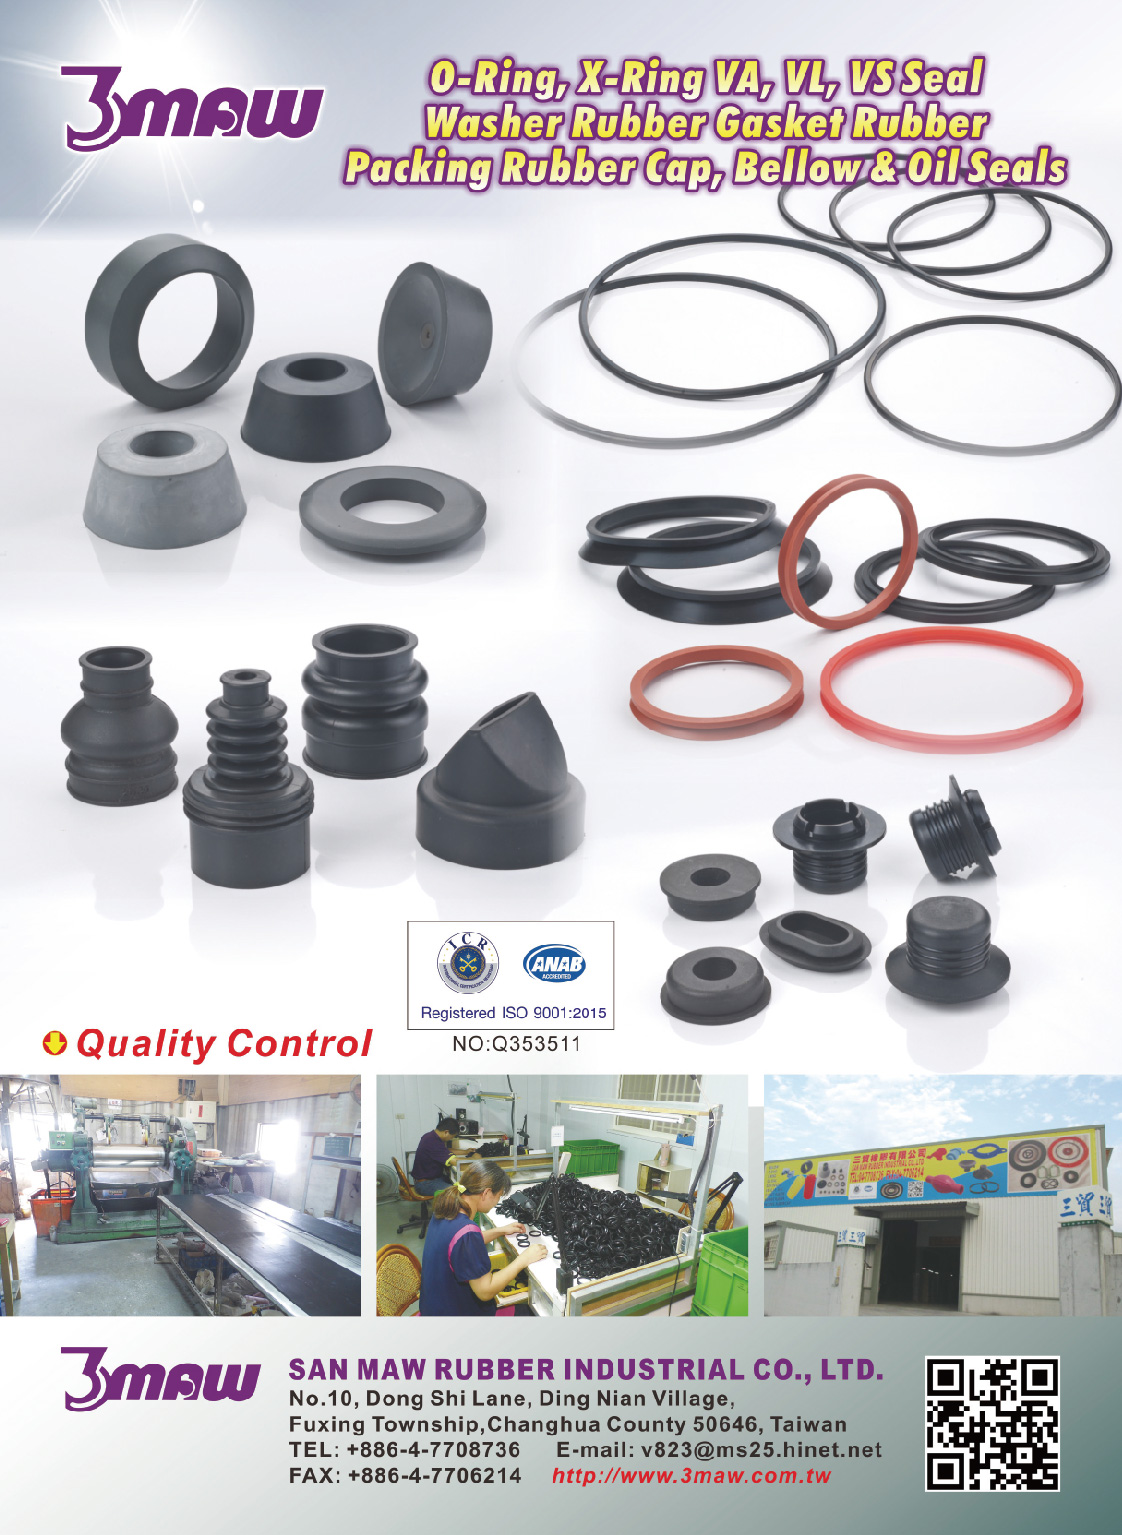 SAN MAW RUBBER INDUSTRIAL CO., LTD.